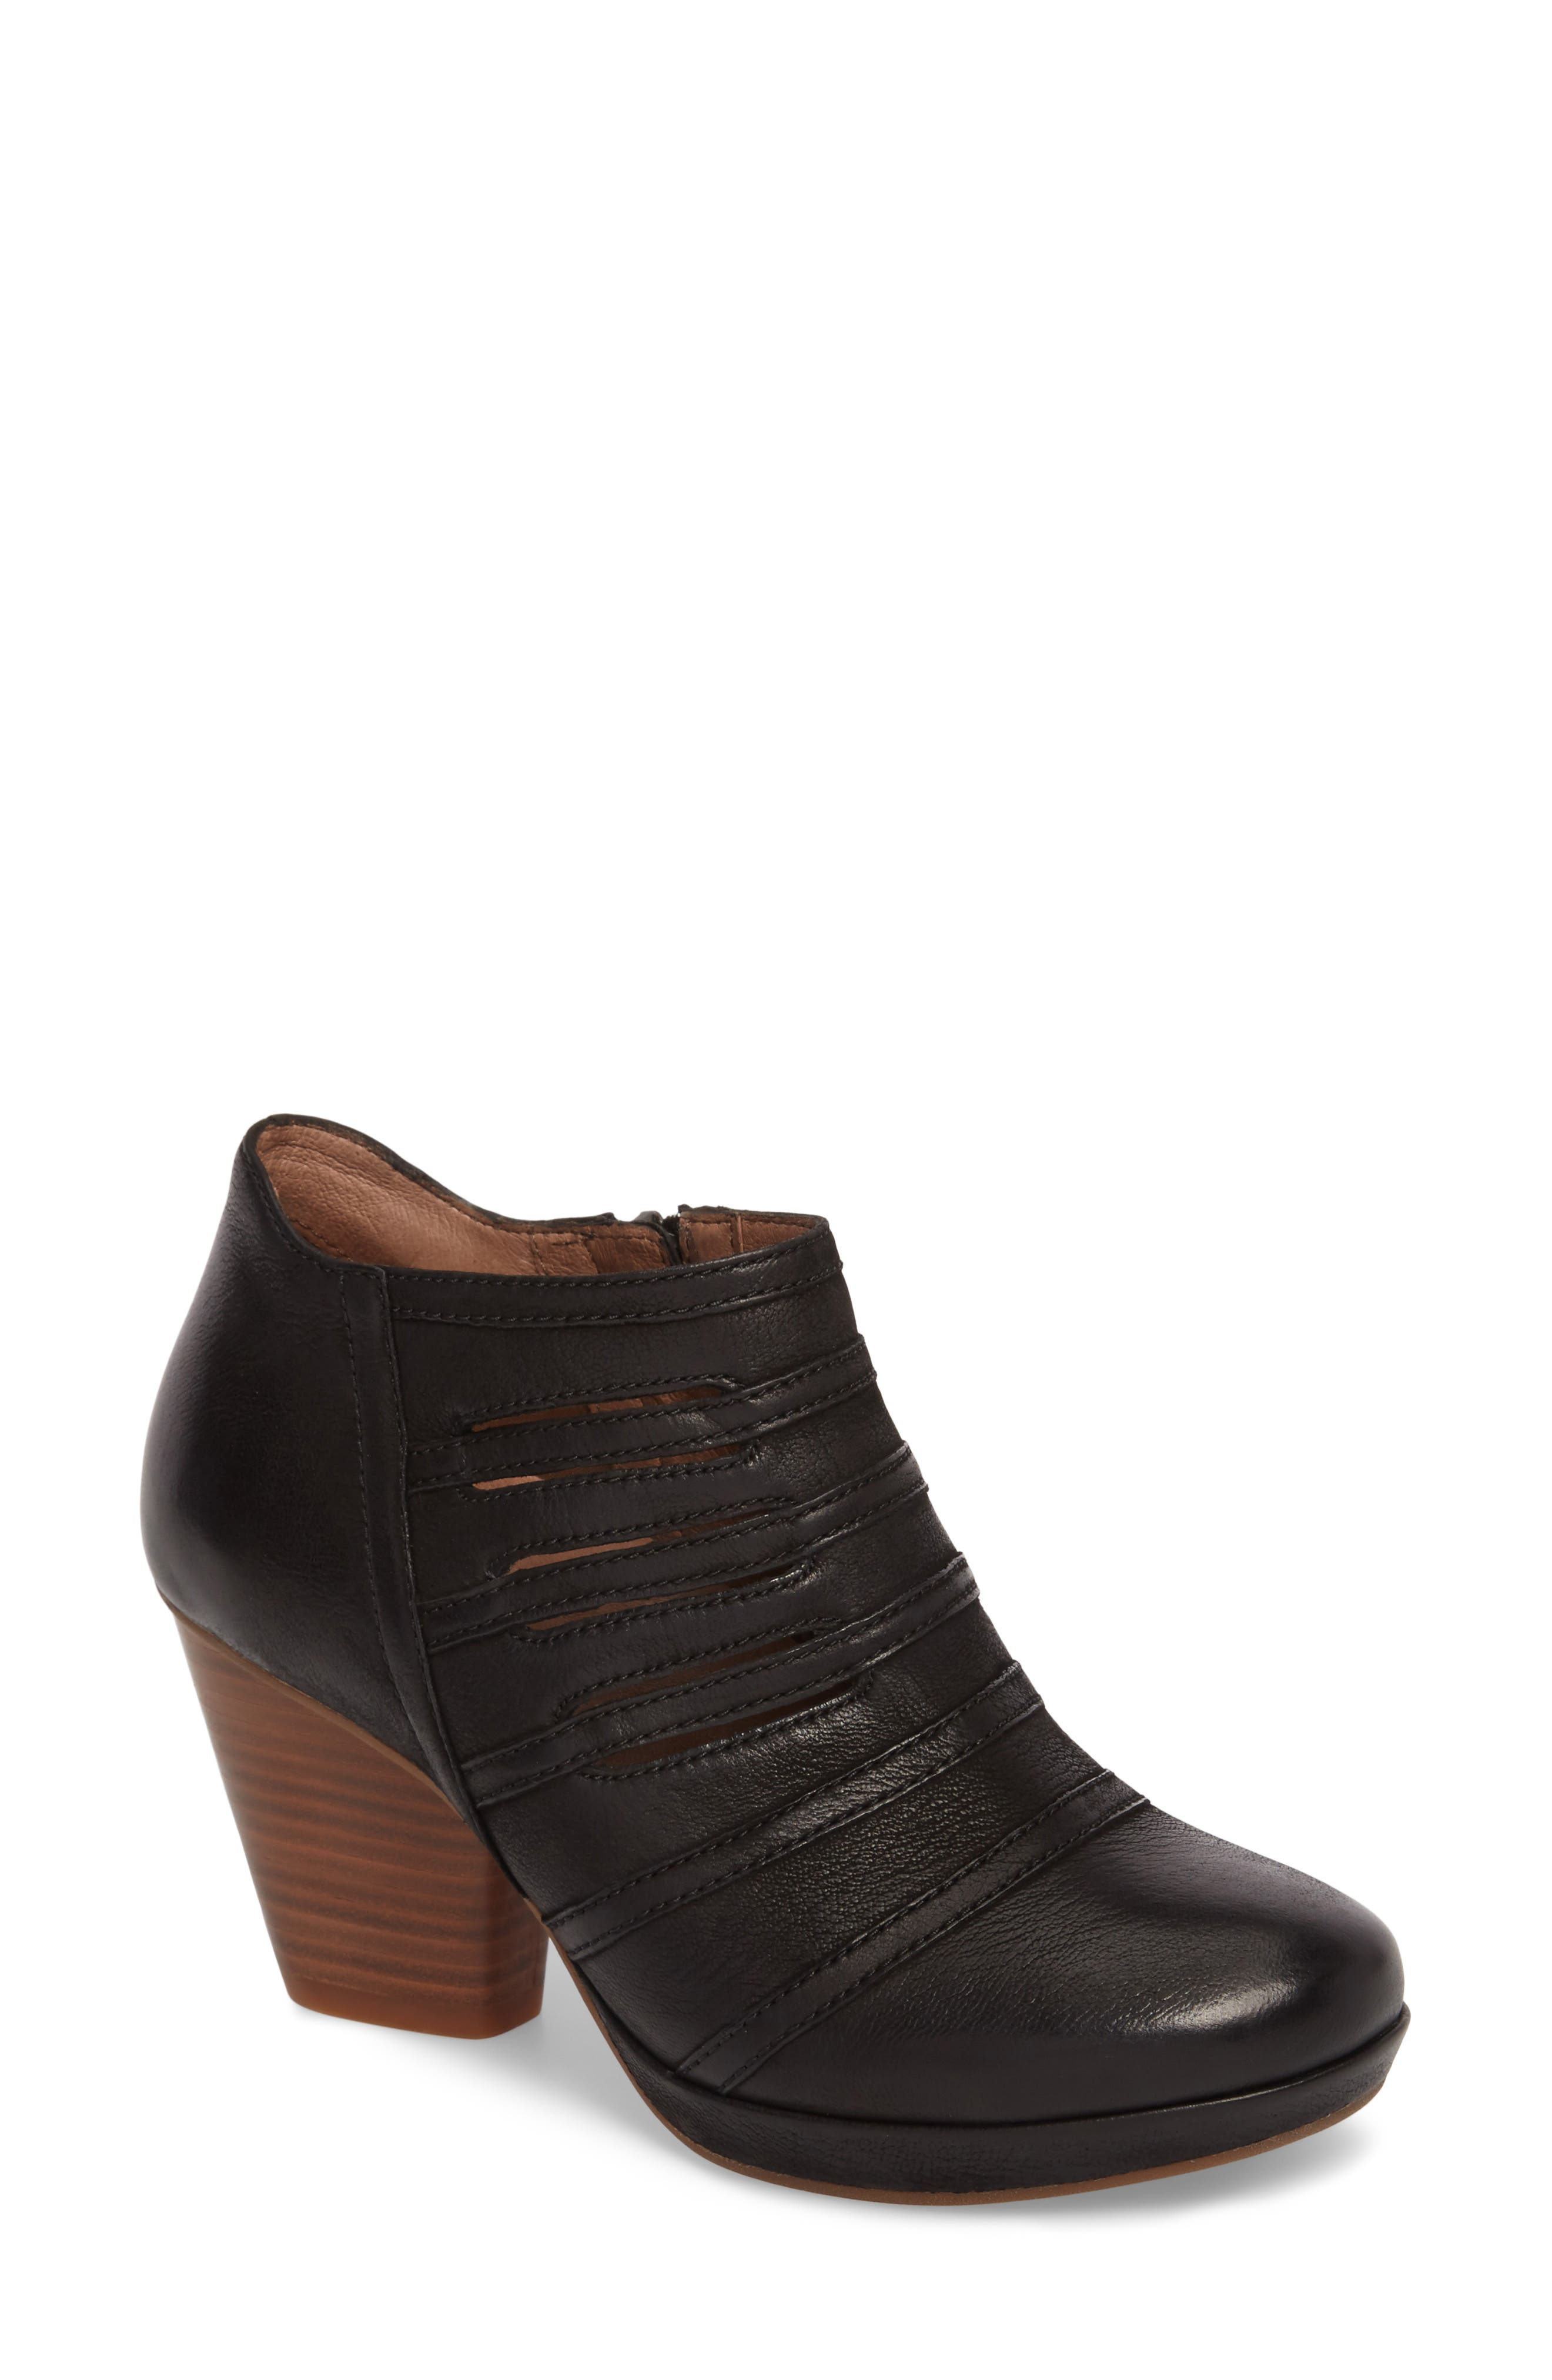 Meadow Bootie,                         Main,                         color, Meadow Black Burnished Leather